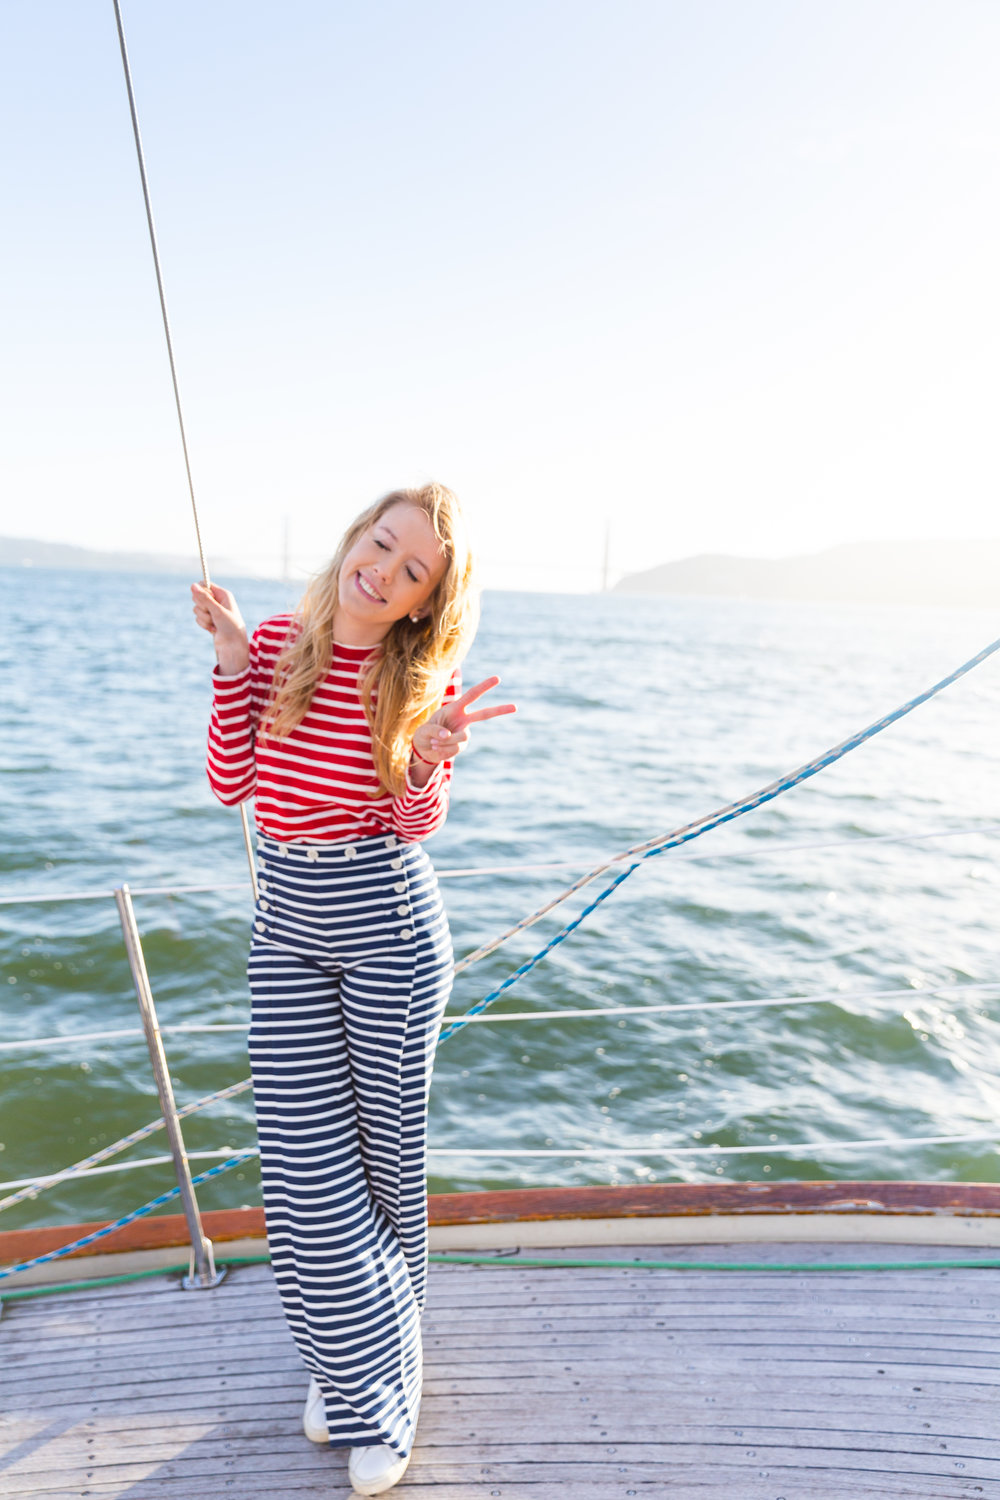 Striped Nautical Sunset Sail Outfit San Francisco-9.jpg